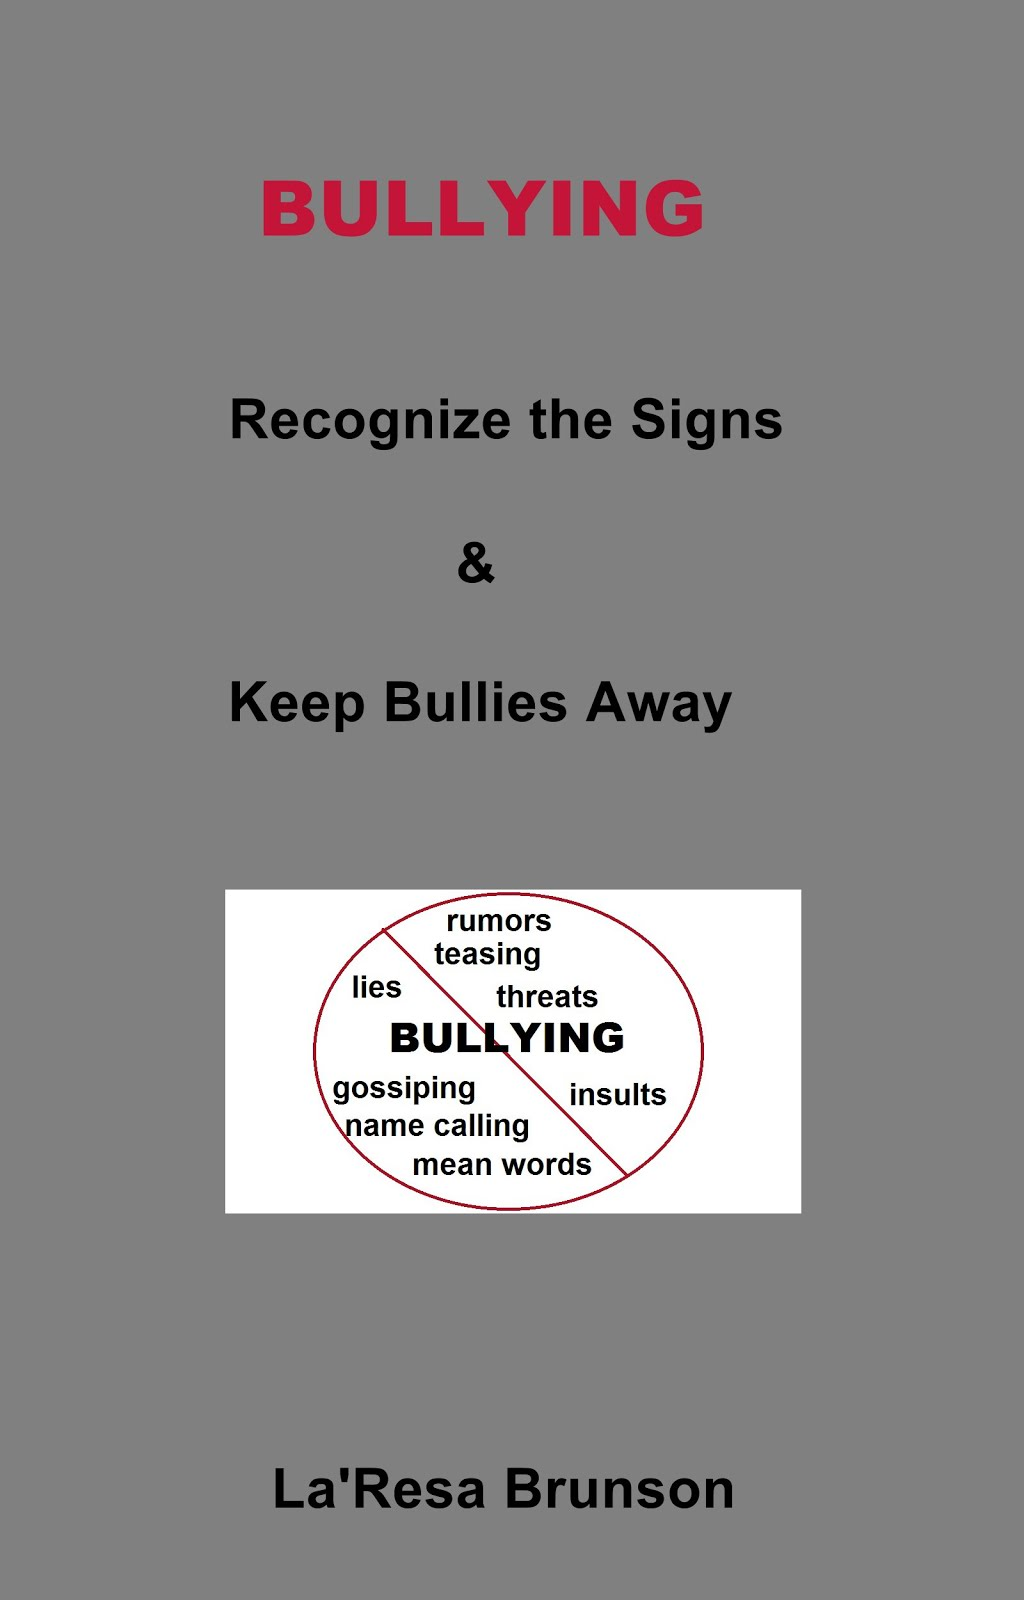 Bullying: Recognize the Signs & Keep Bullies Away